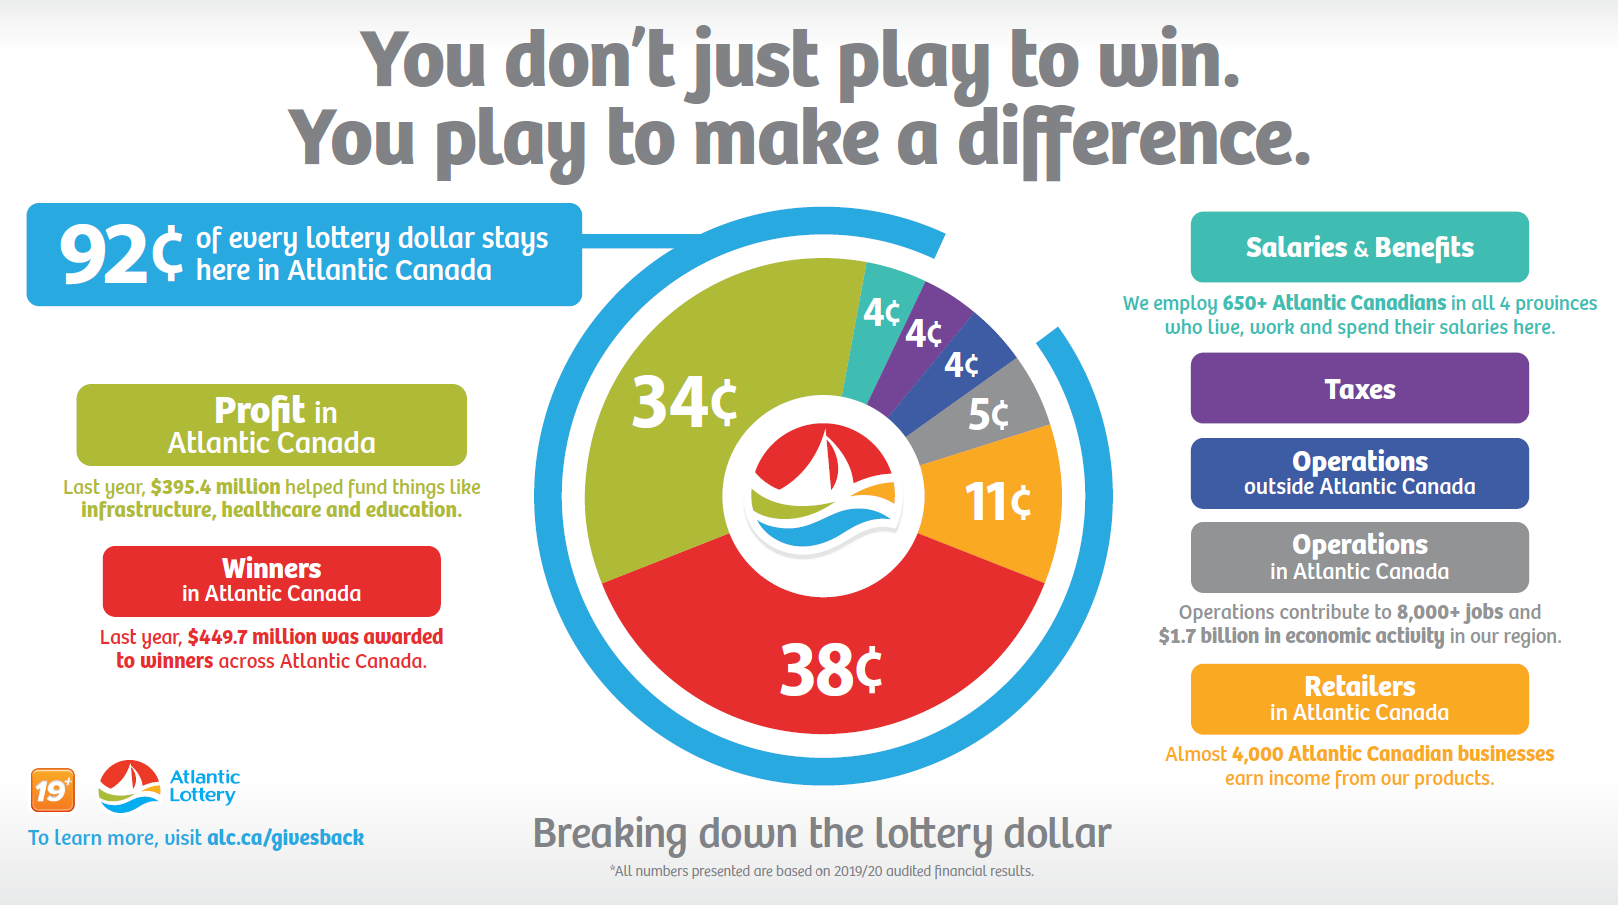 BREAKING DOWN THE LOTTERY DOLLAR